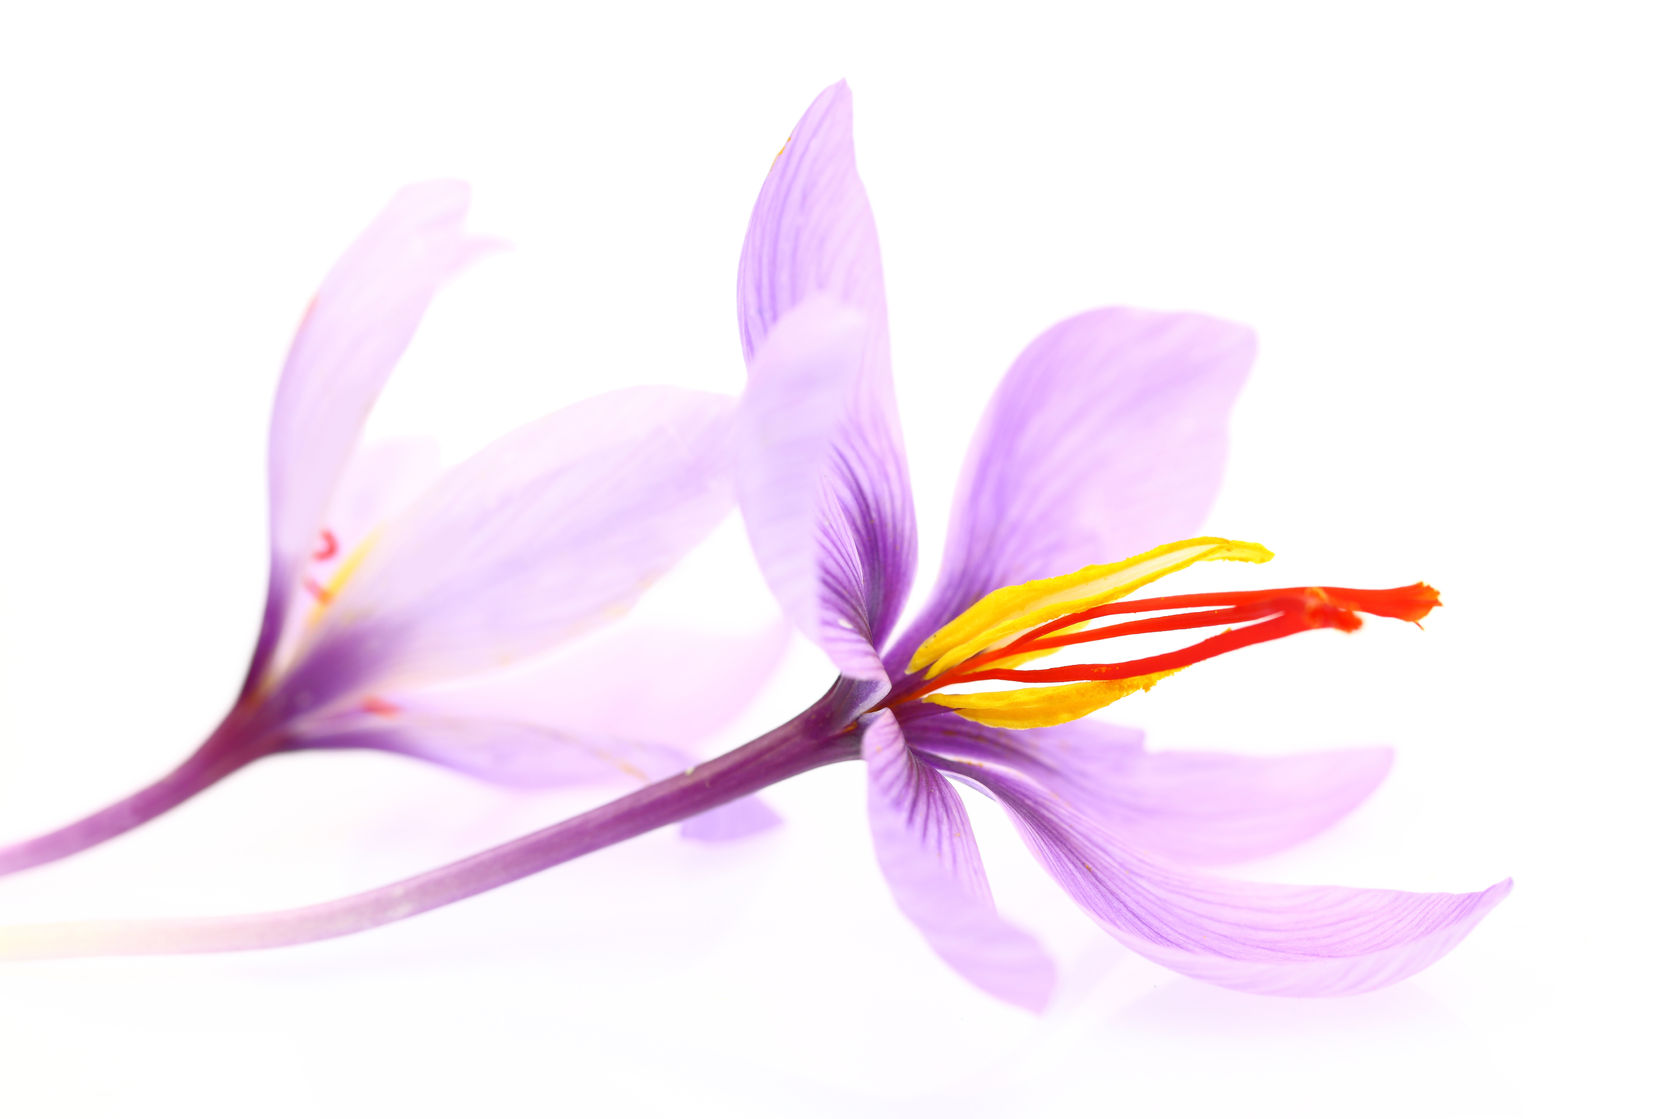 saffron helps depression and anxiety in teens with both